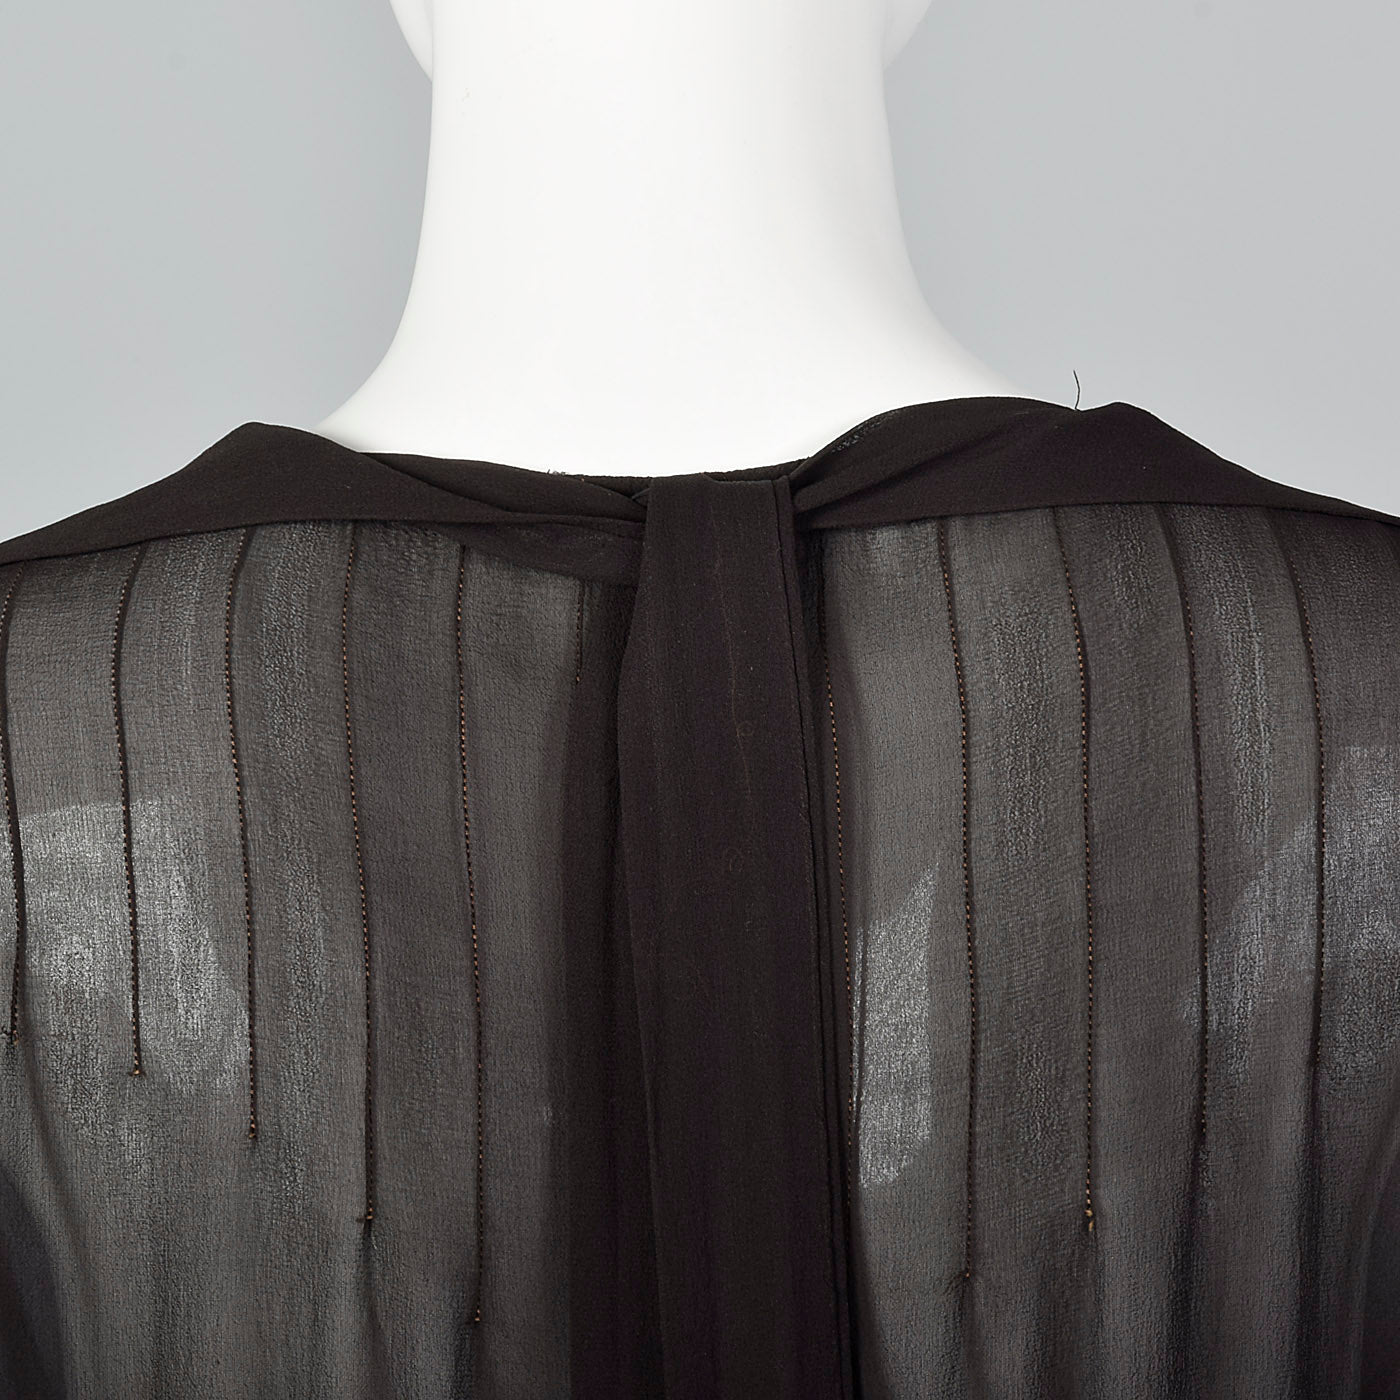 1920s Sheer Black Dress with Layered Skirt